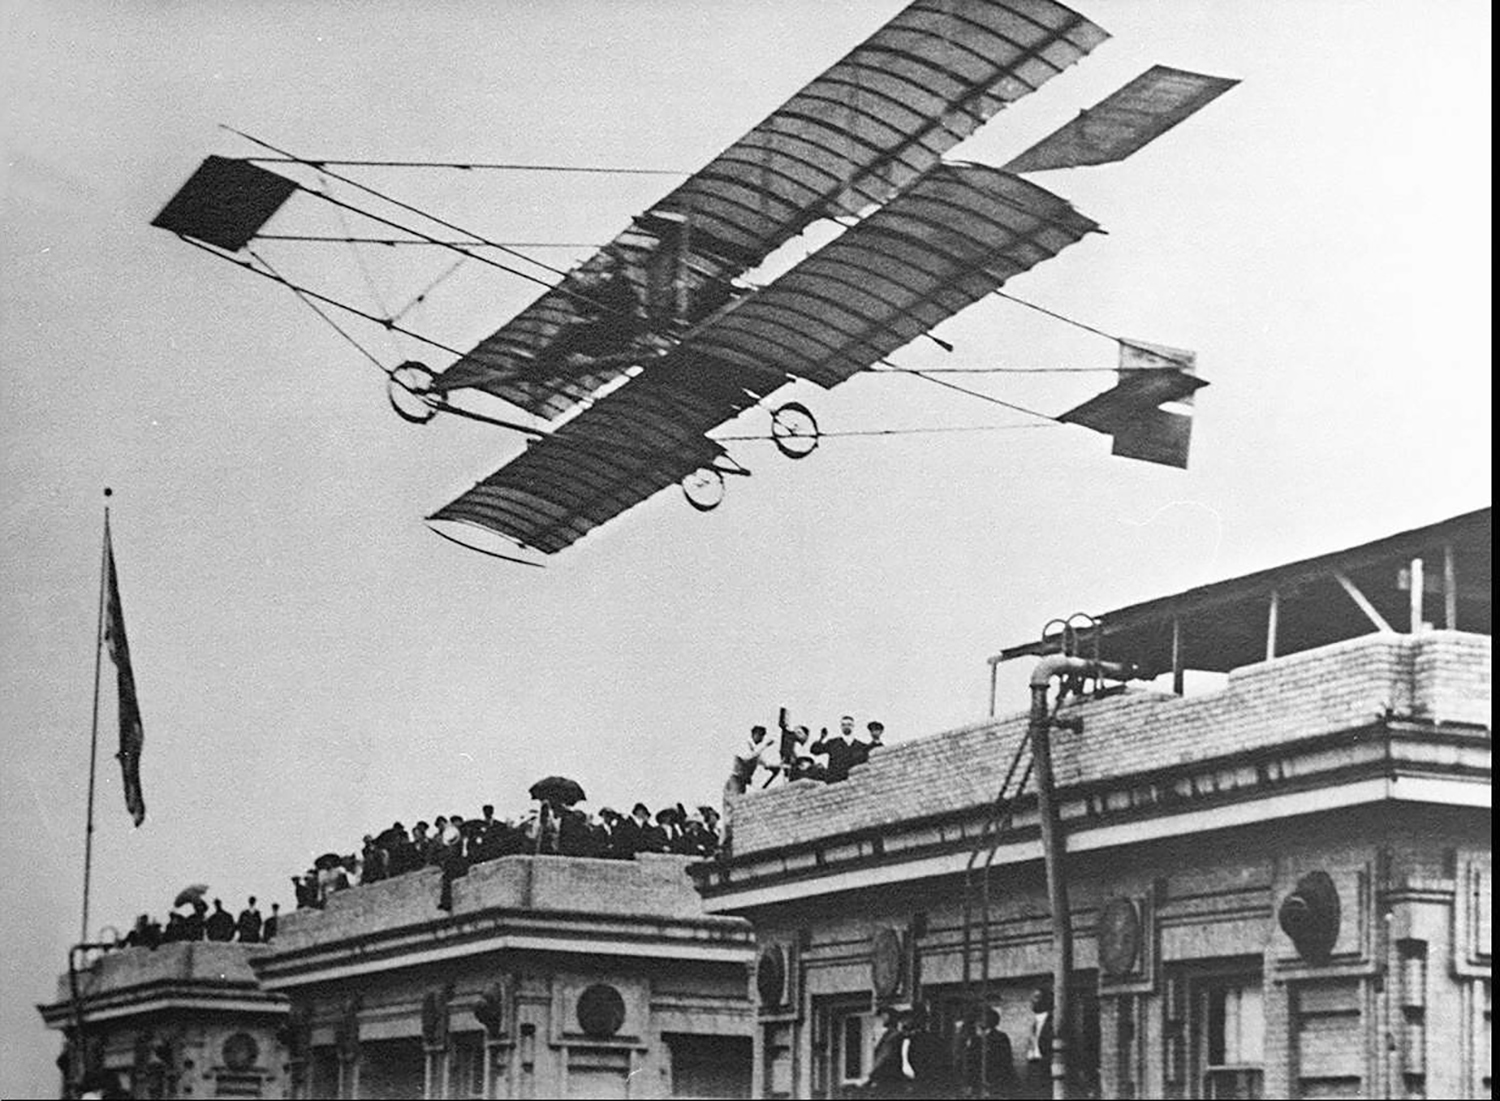 Photo of Curtiss Pusher aircraft taking off from hotel roof